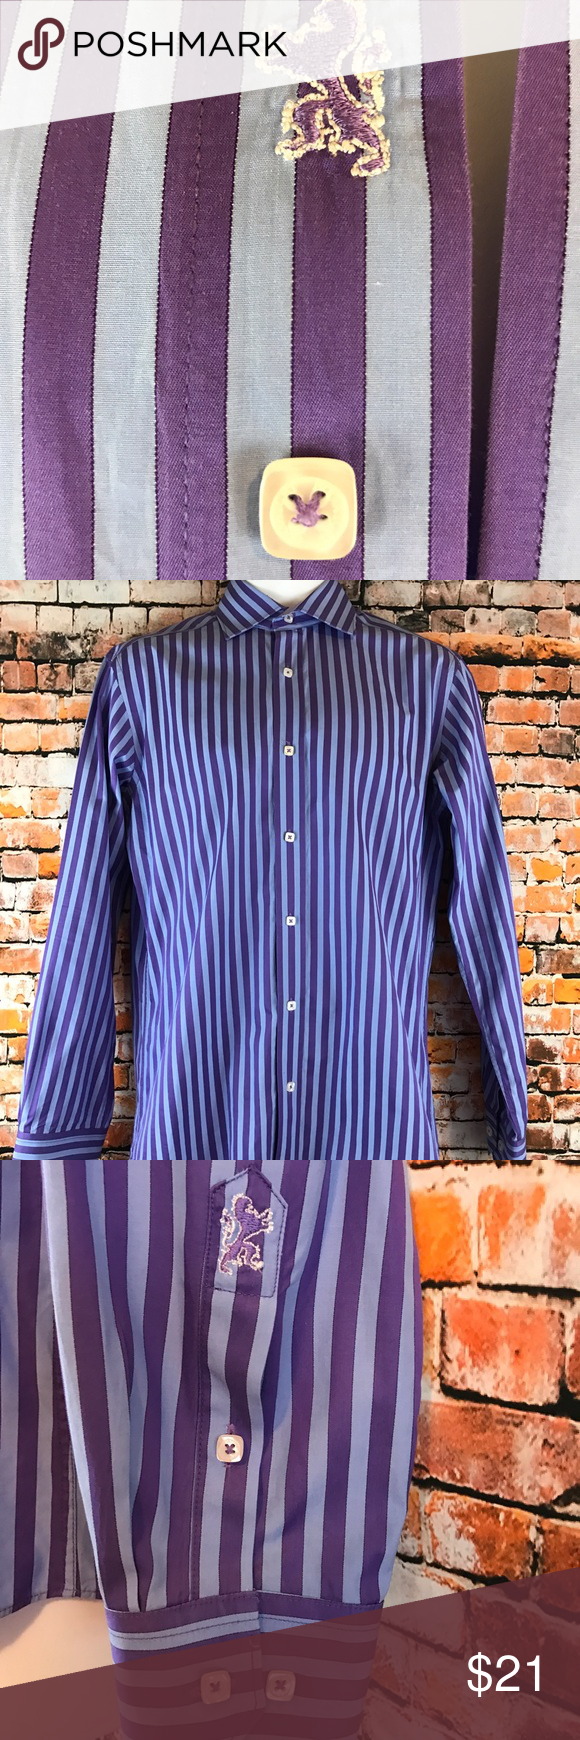 Bugatchi Uomo Designer Men's Size S Button Shirt Barely Worn. Bugatchi Uomo Mens Size Small Shirt. Long sleeves.  Purple and blue striped pattern.   Square Button front and at the cuffs. Made of 100% Cotton. Chest approximately 43 inches and length approximately 29 1/2 inches. Bugatchi Shirts Casual Button Down Shirts